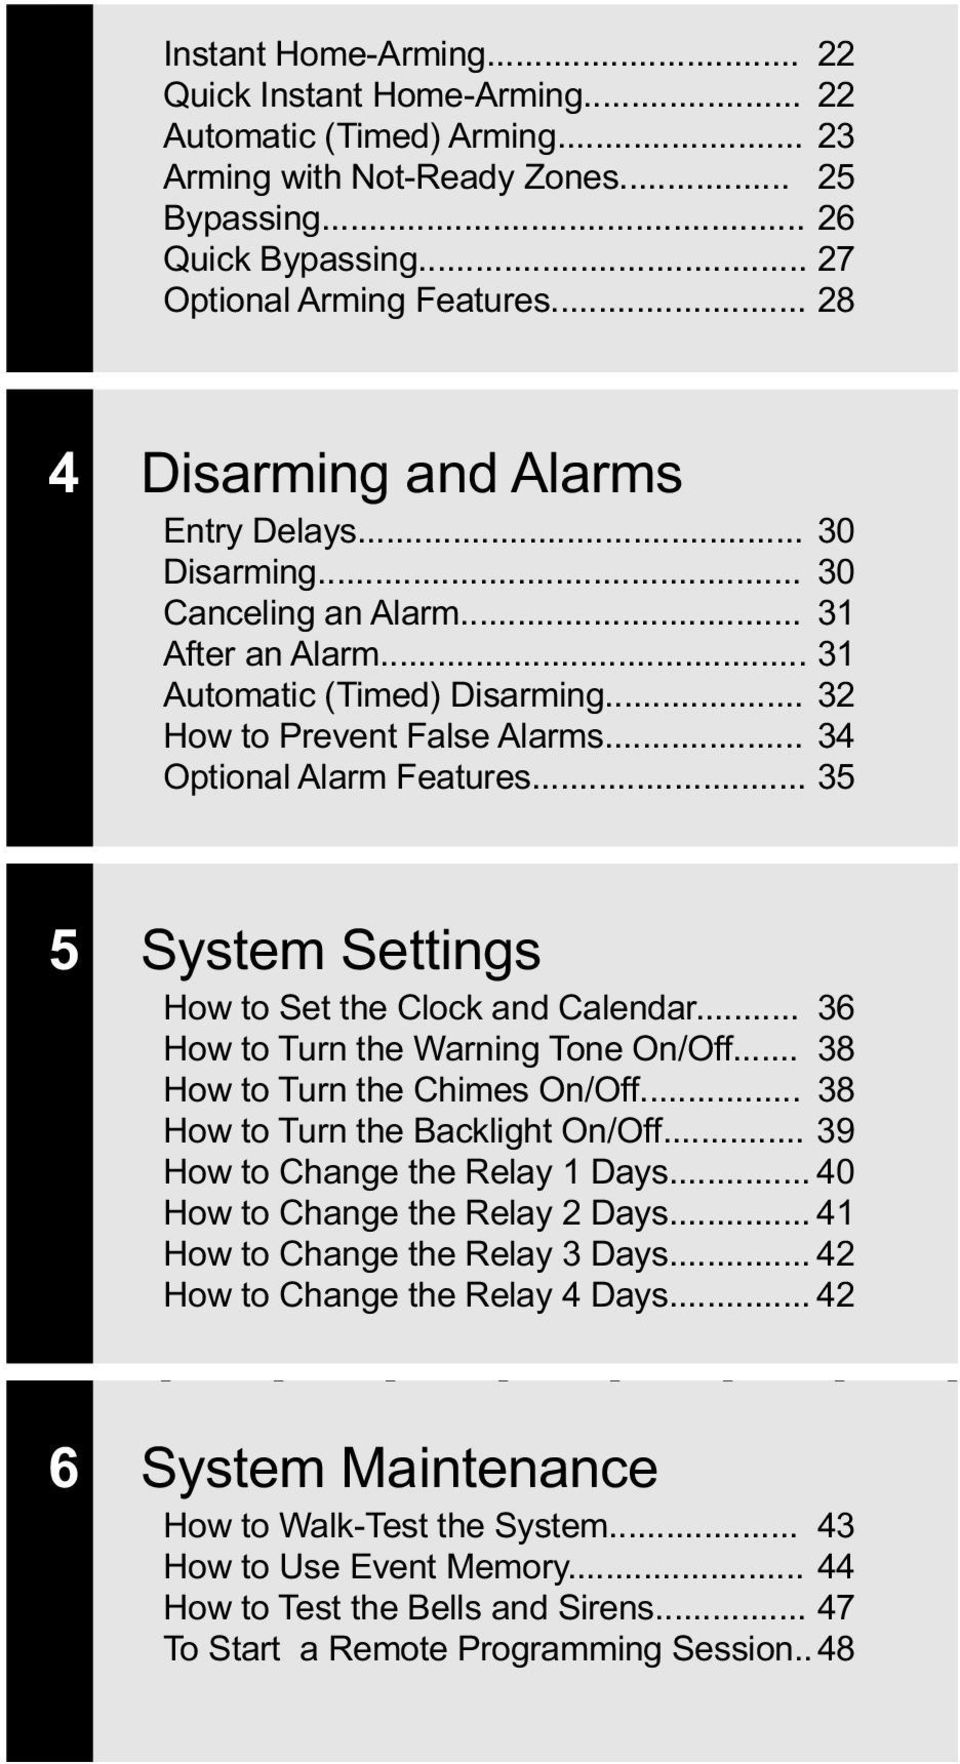 .. 34 Optional Alarm Features... 35 - - - - - - - - - 5 System Settings How to Set the Clock and Calendar... 36 How to Turn the Warning Tone On/Off... 38 How to Turn the Chimes On/Off.